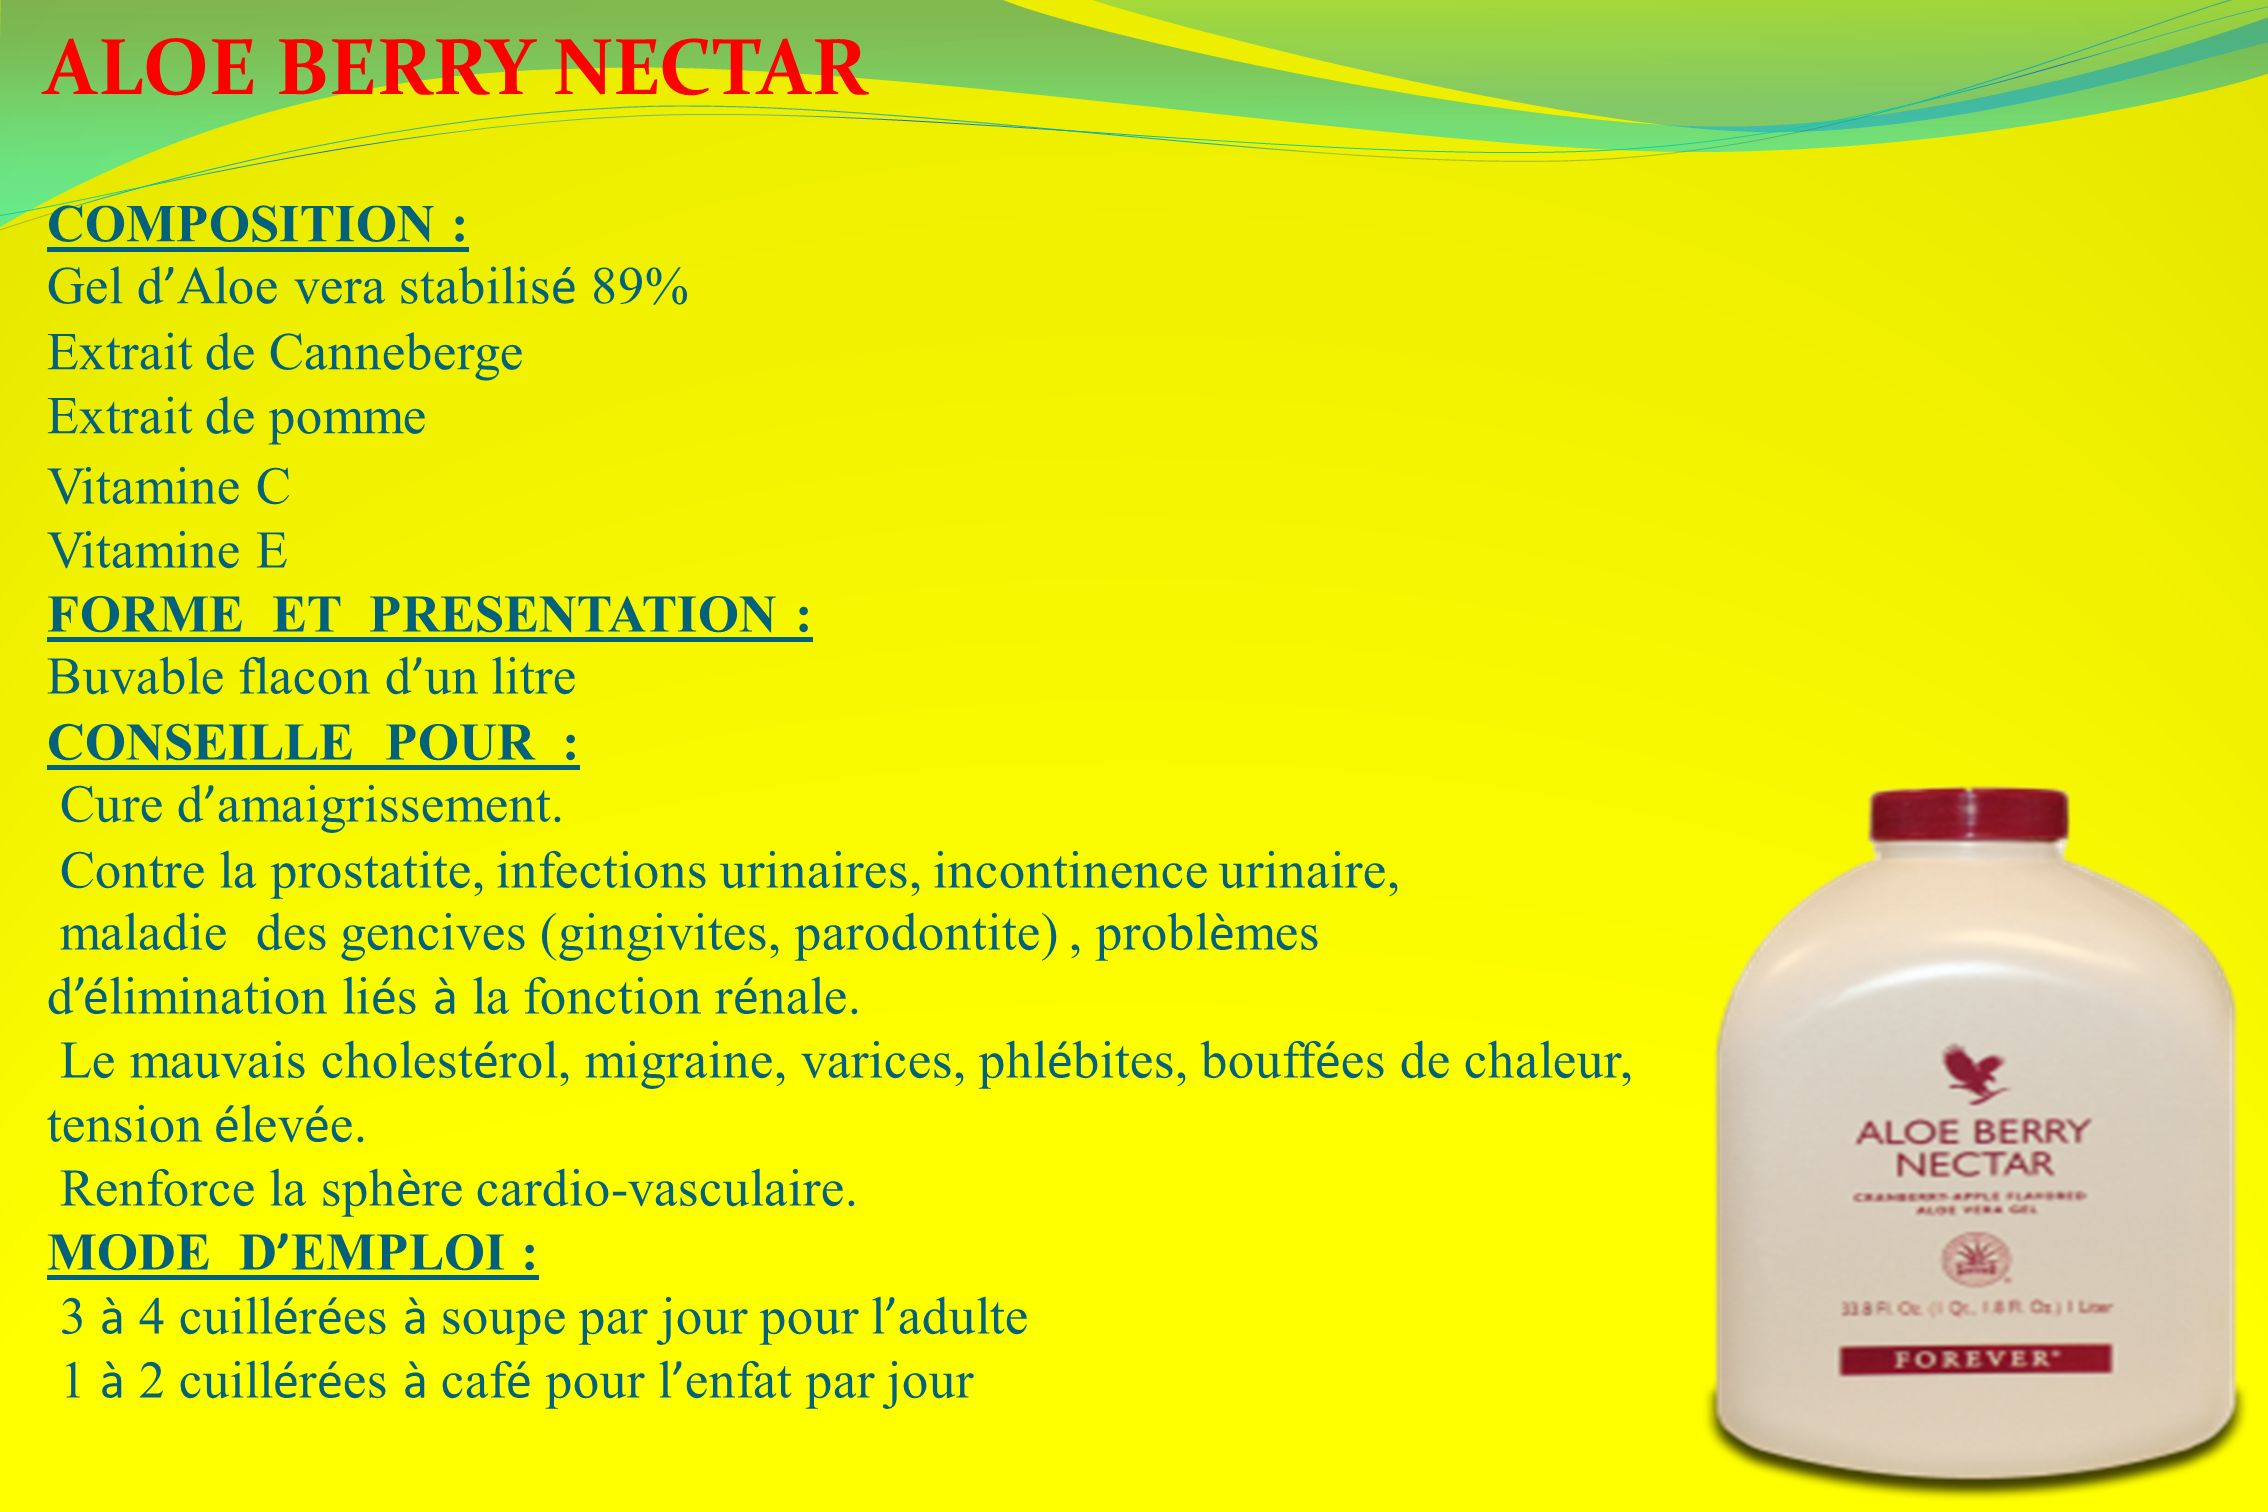 ALOE BERRY NECTAR COMPOSITION : Gel d'Aloe vera stabilisé 89%